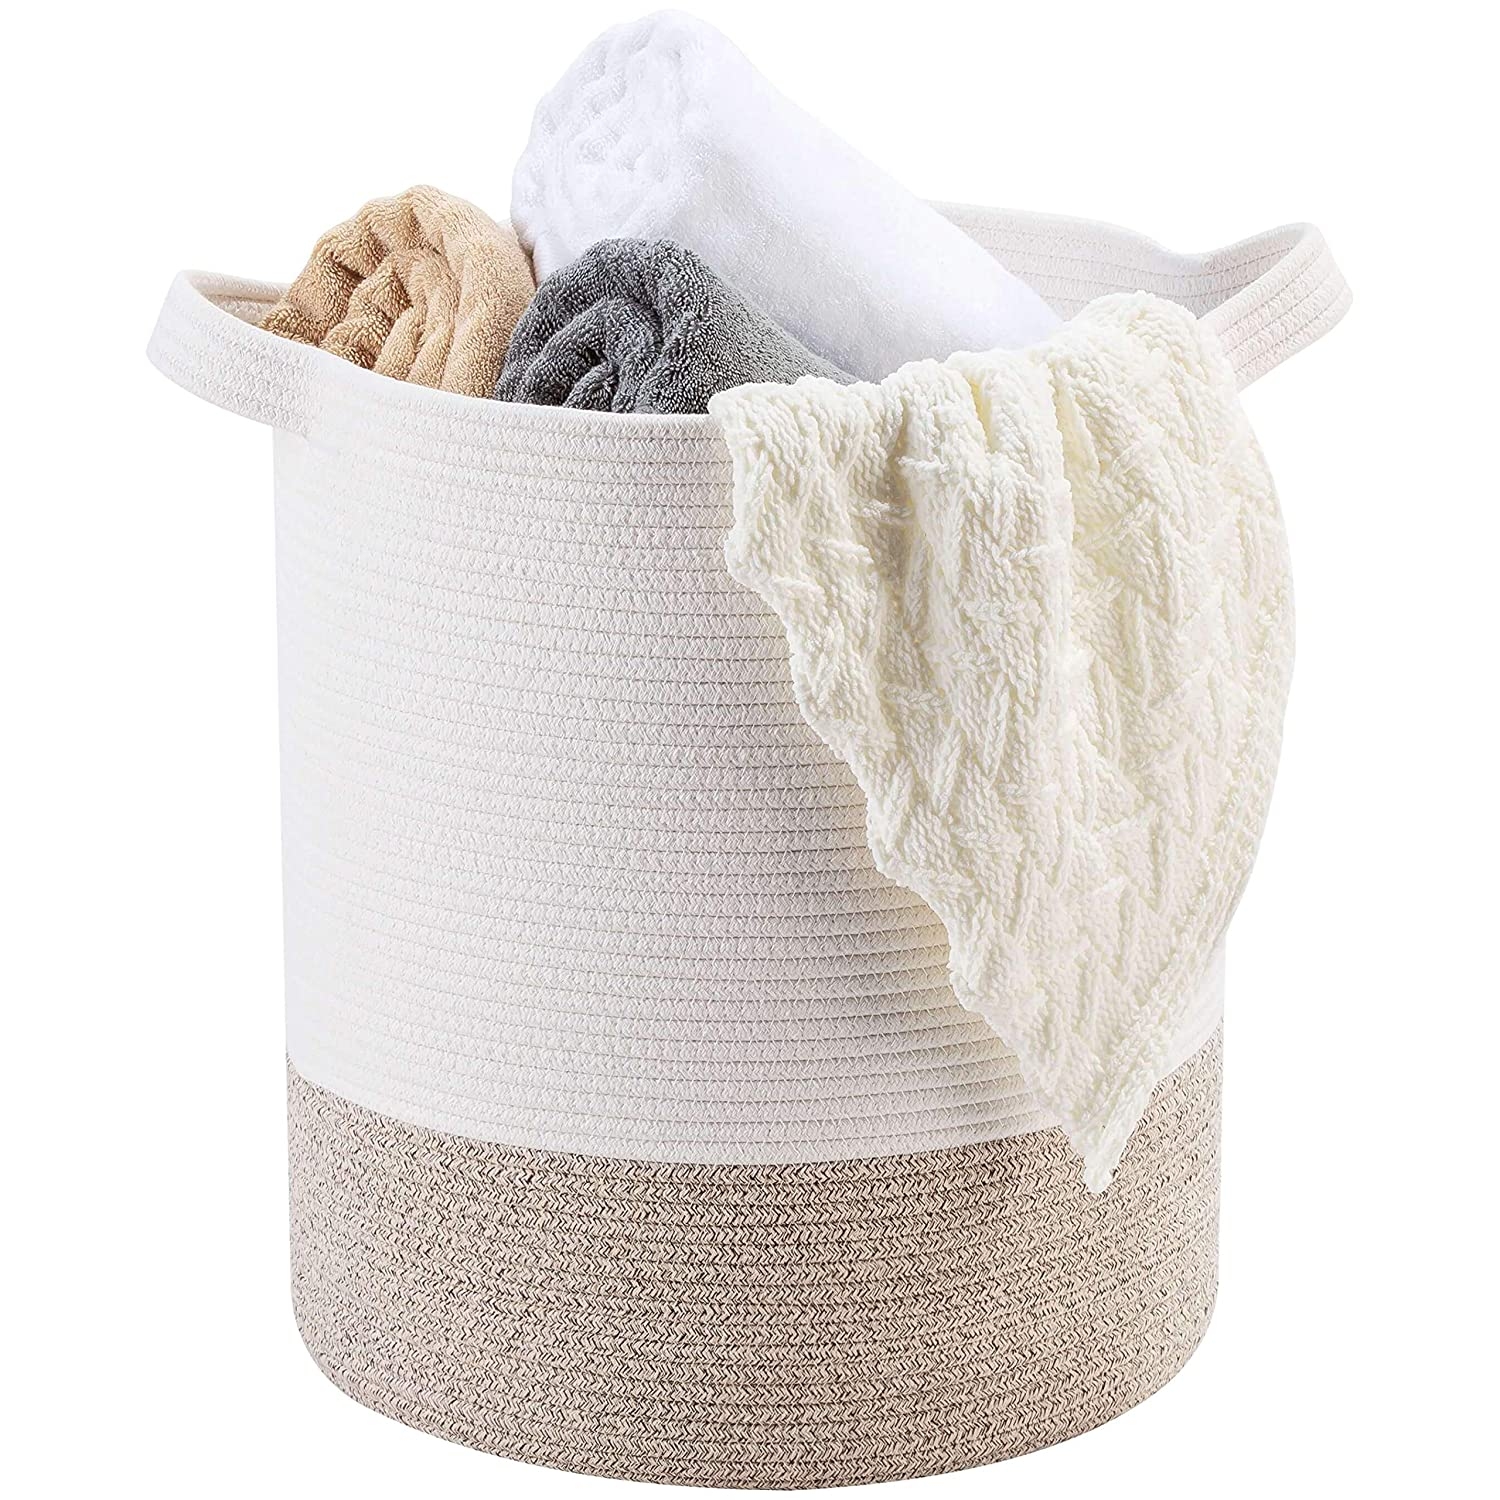 "MINTWOOD Design Large 18"" x 16"" Decorative Woven Cotton Rope Basket, Tall Laundry Basket/Hamper, Blanket Basket for Living Room, Storage Baskets with Handles for Toys, Throws, Pillows & Towels"